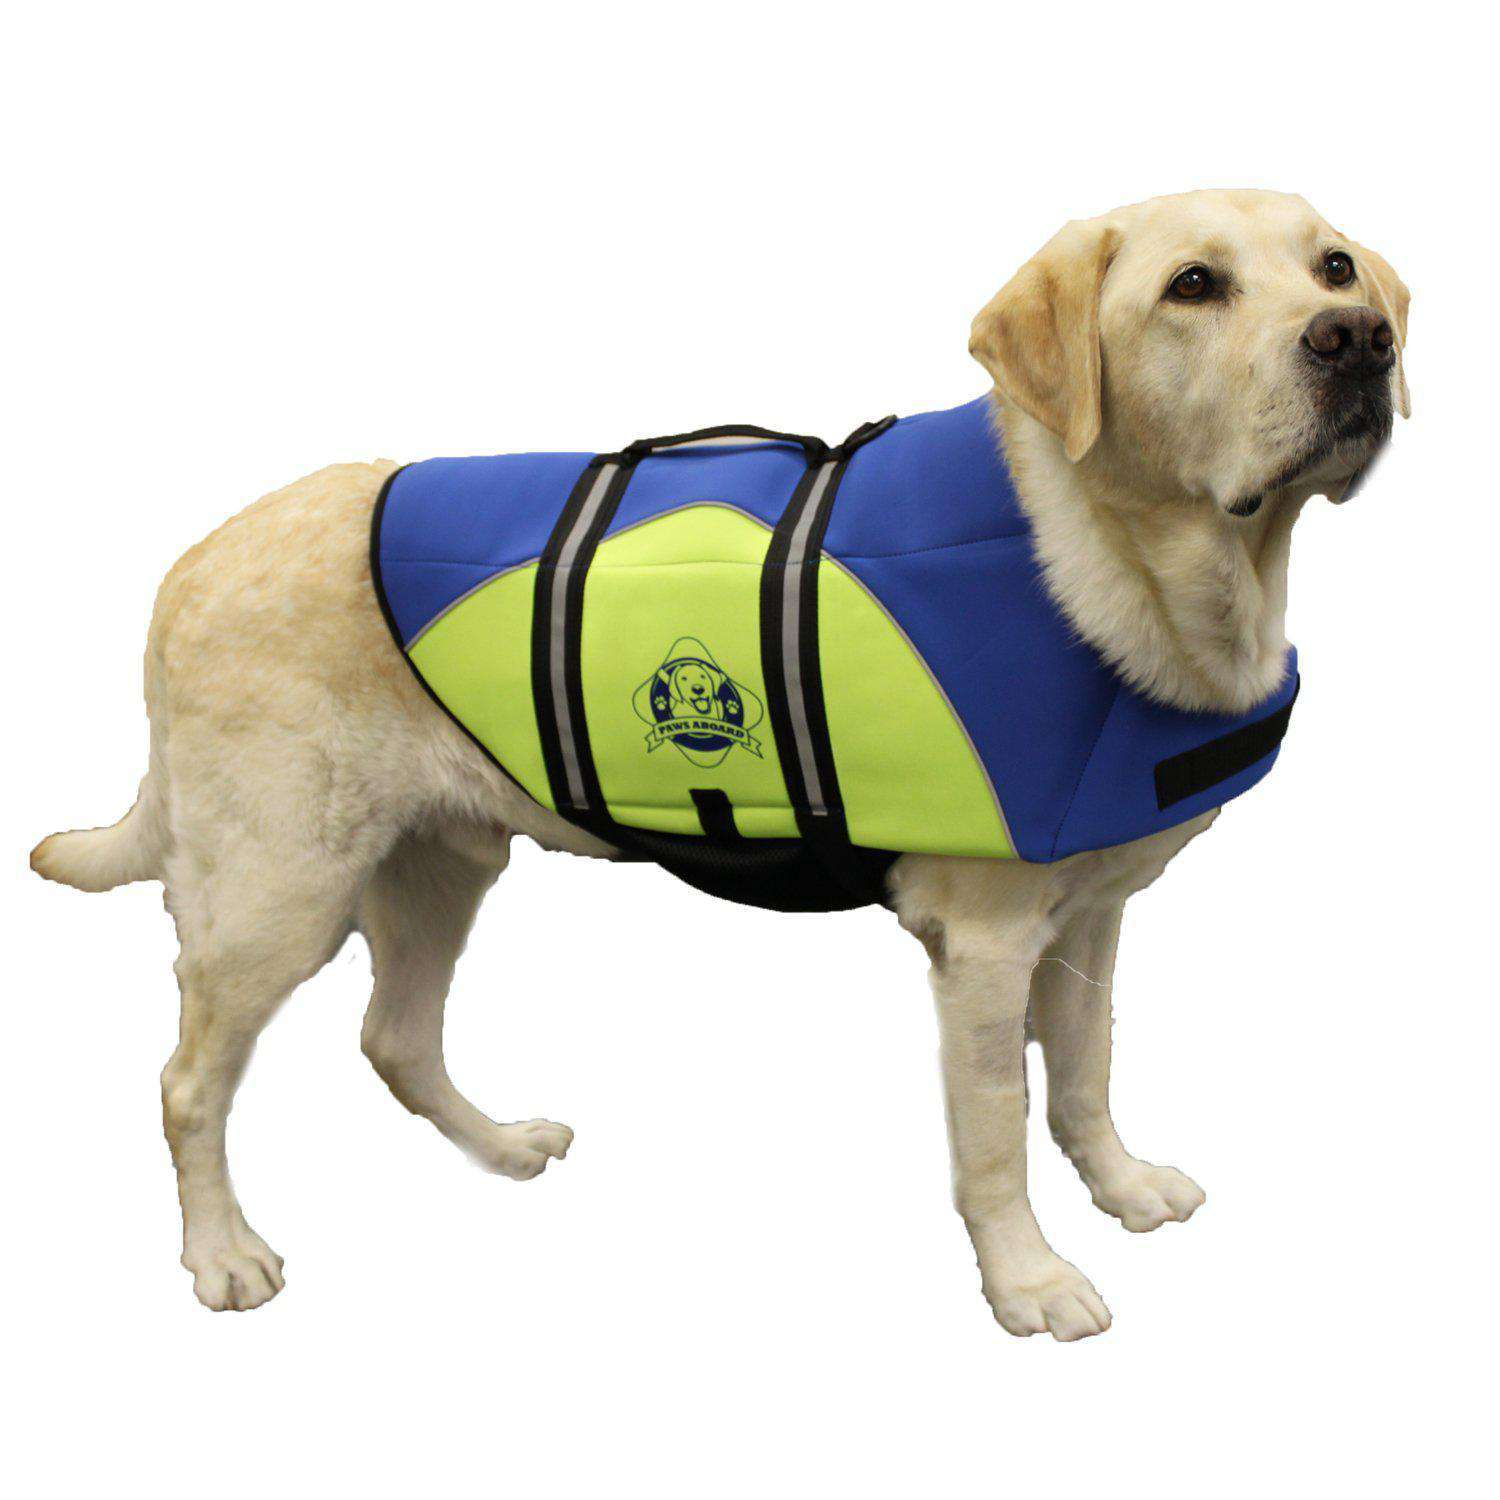 Paws Aboard Extra Large Neoprene Designer Doggy Blue - Yellow Life Guard - Jacket Upto Over 90 Lbs-Paws Aboard-DirtyFurClothing